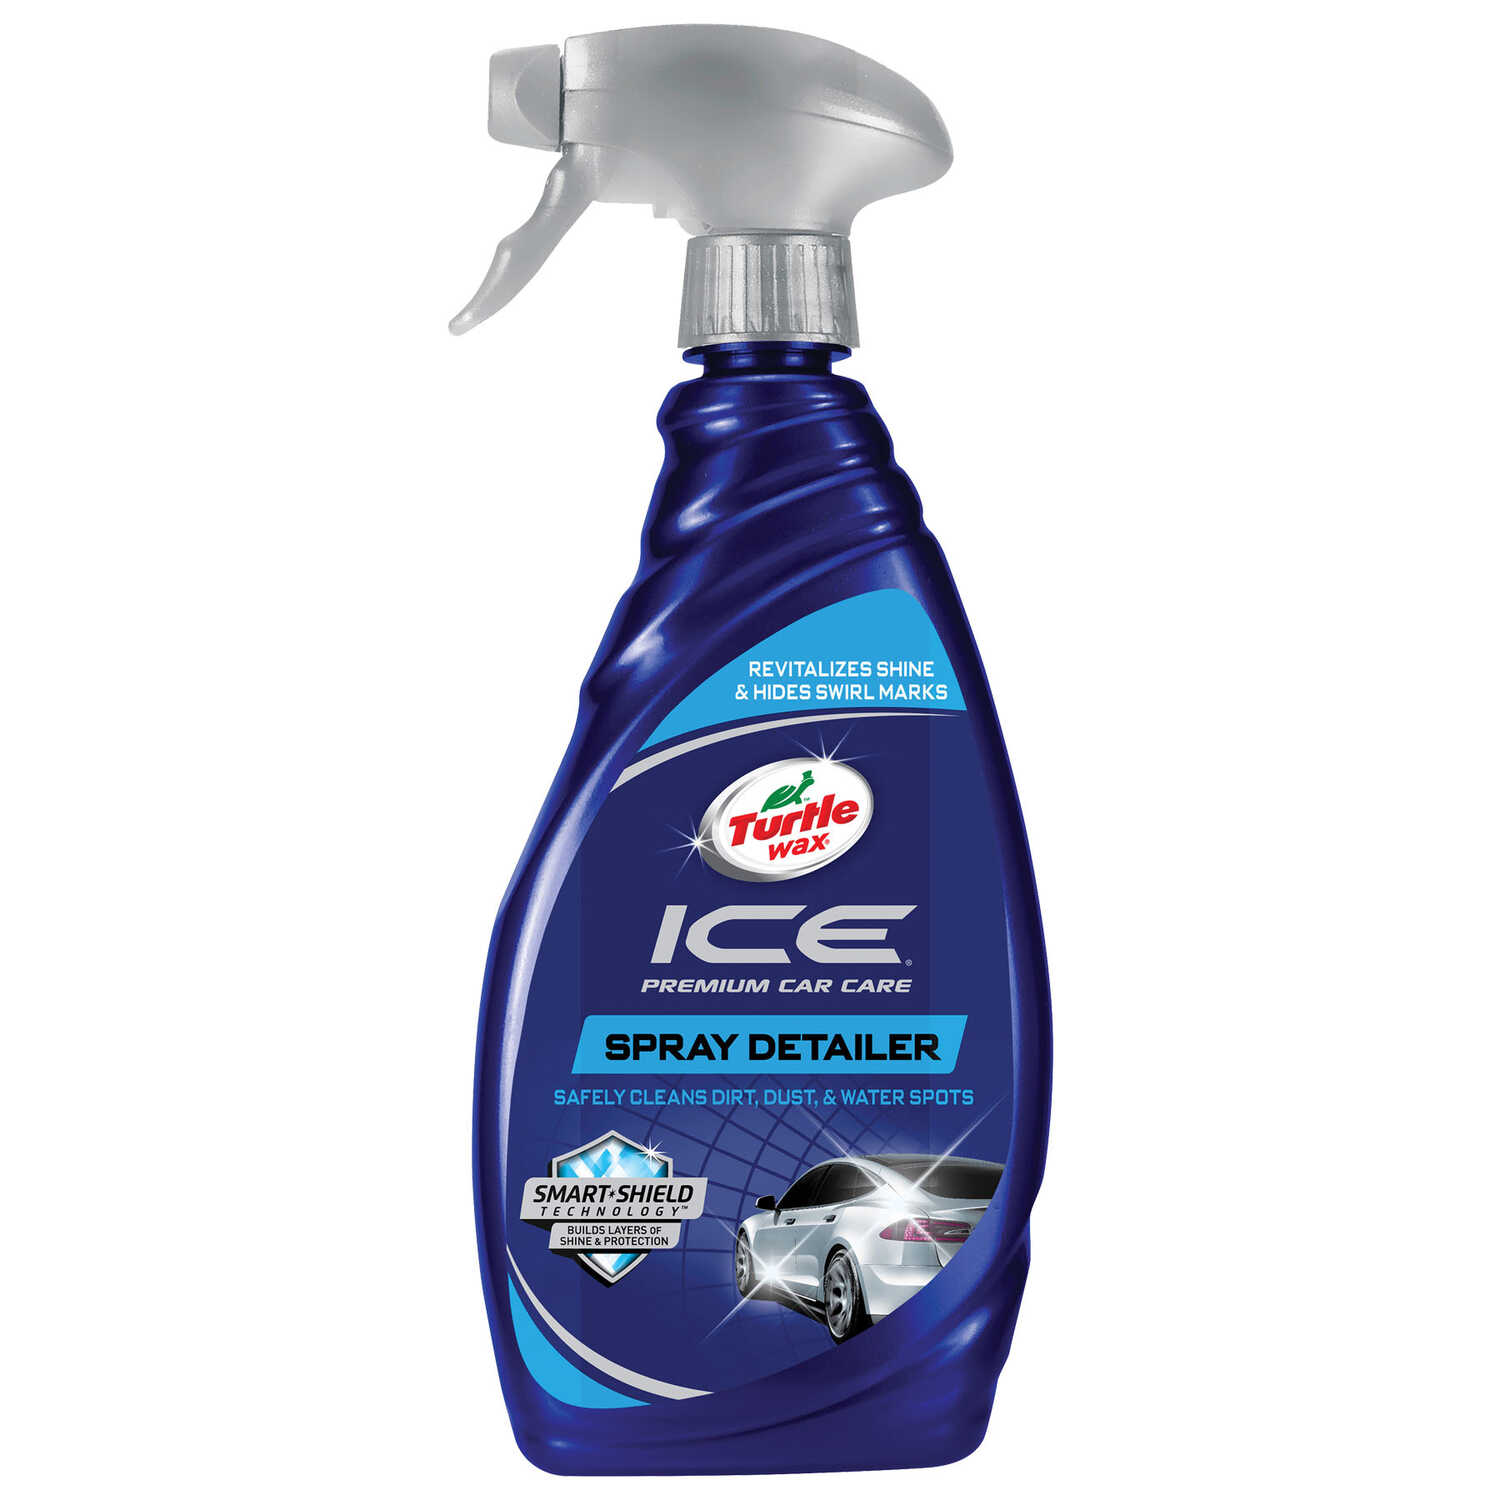 Ice  Spray Detailer  Liquid  Automobile Polish  20 oz. For Protection Of A Conventional Car Wax In A